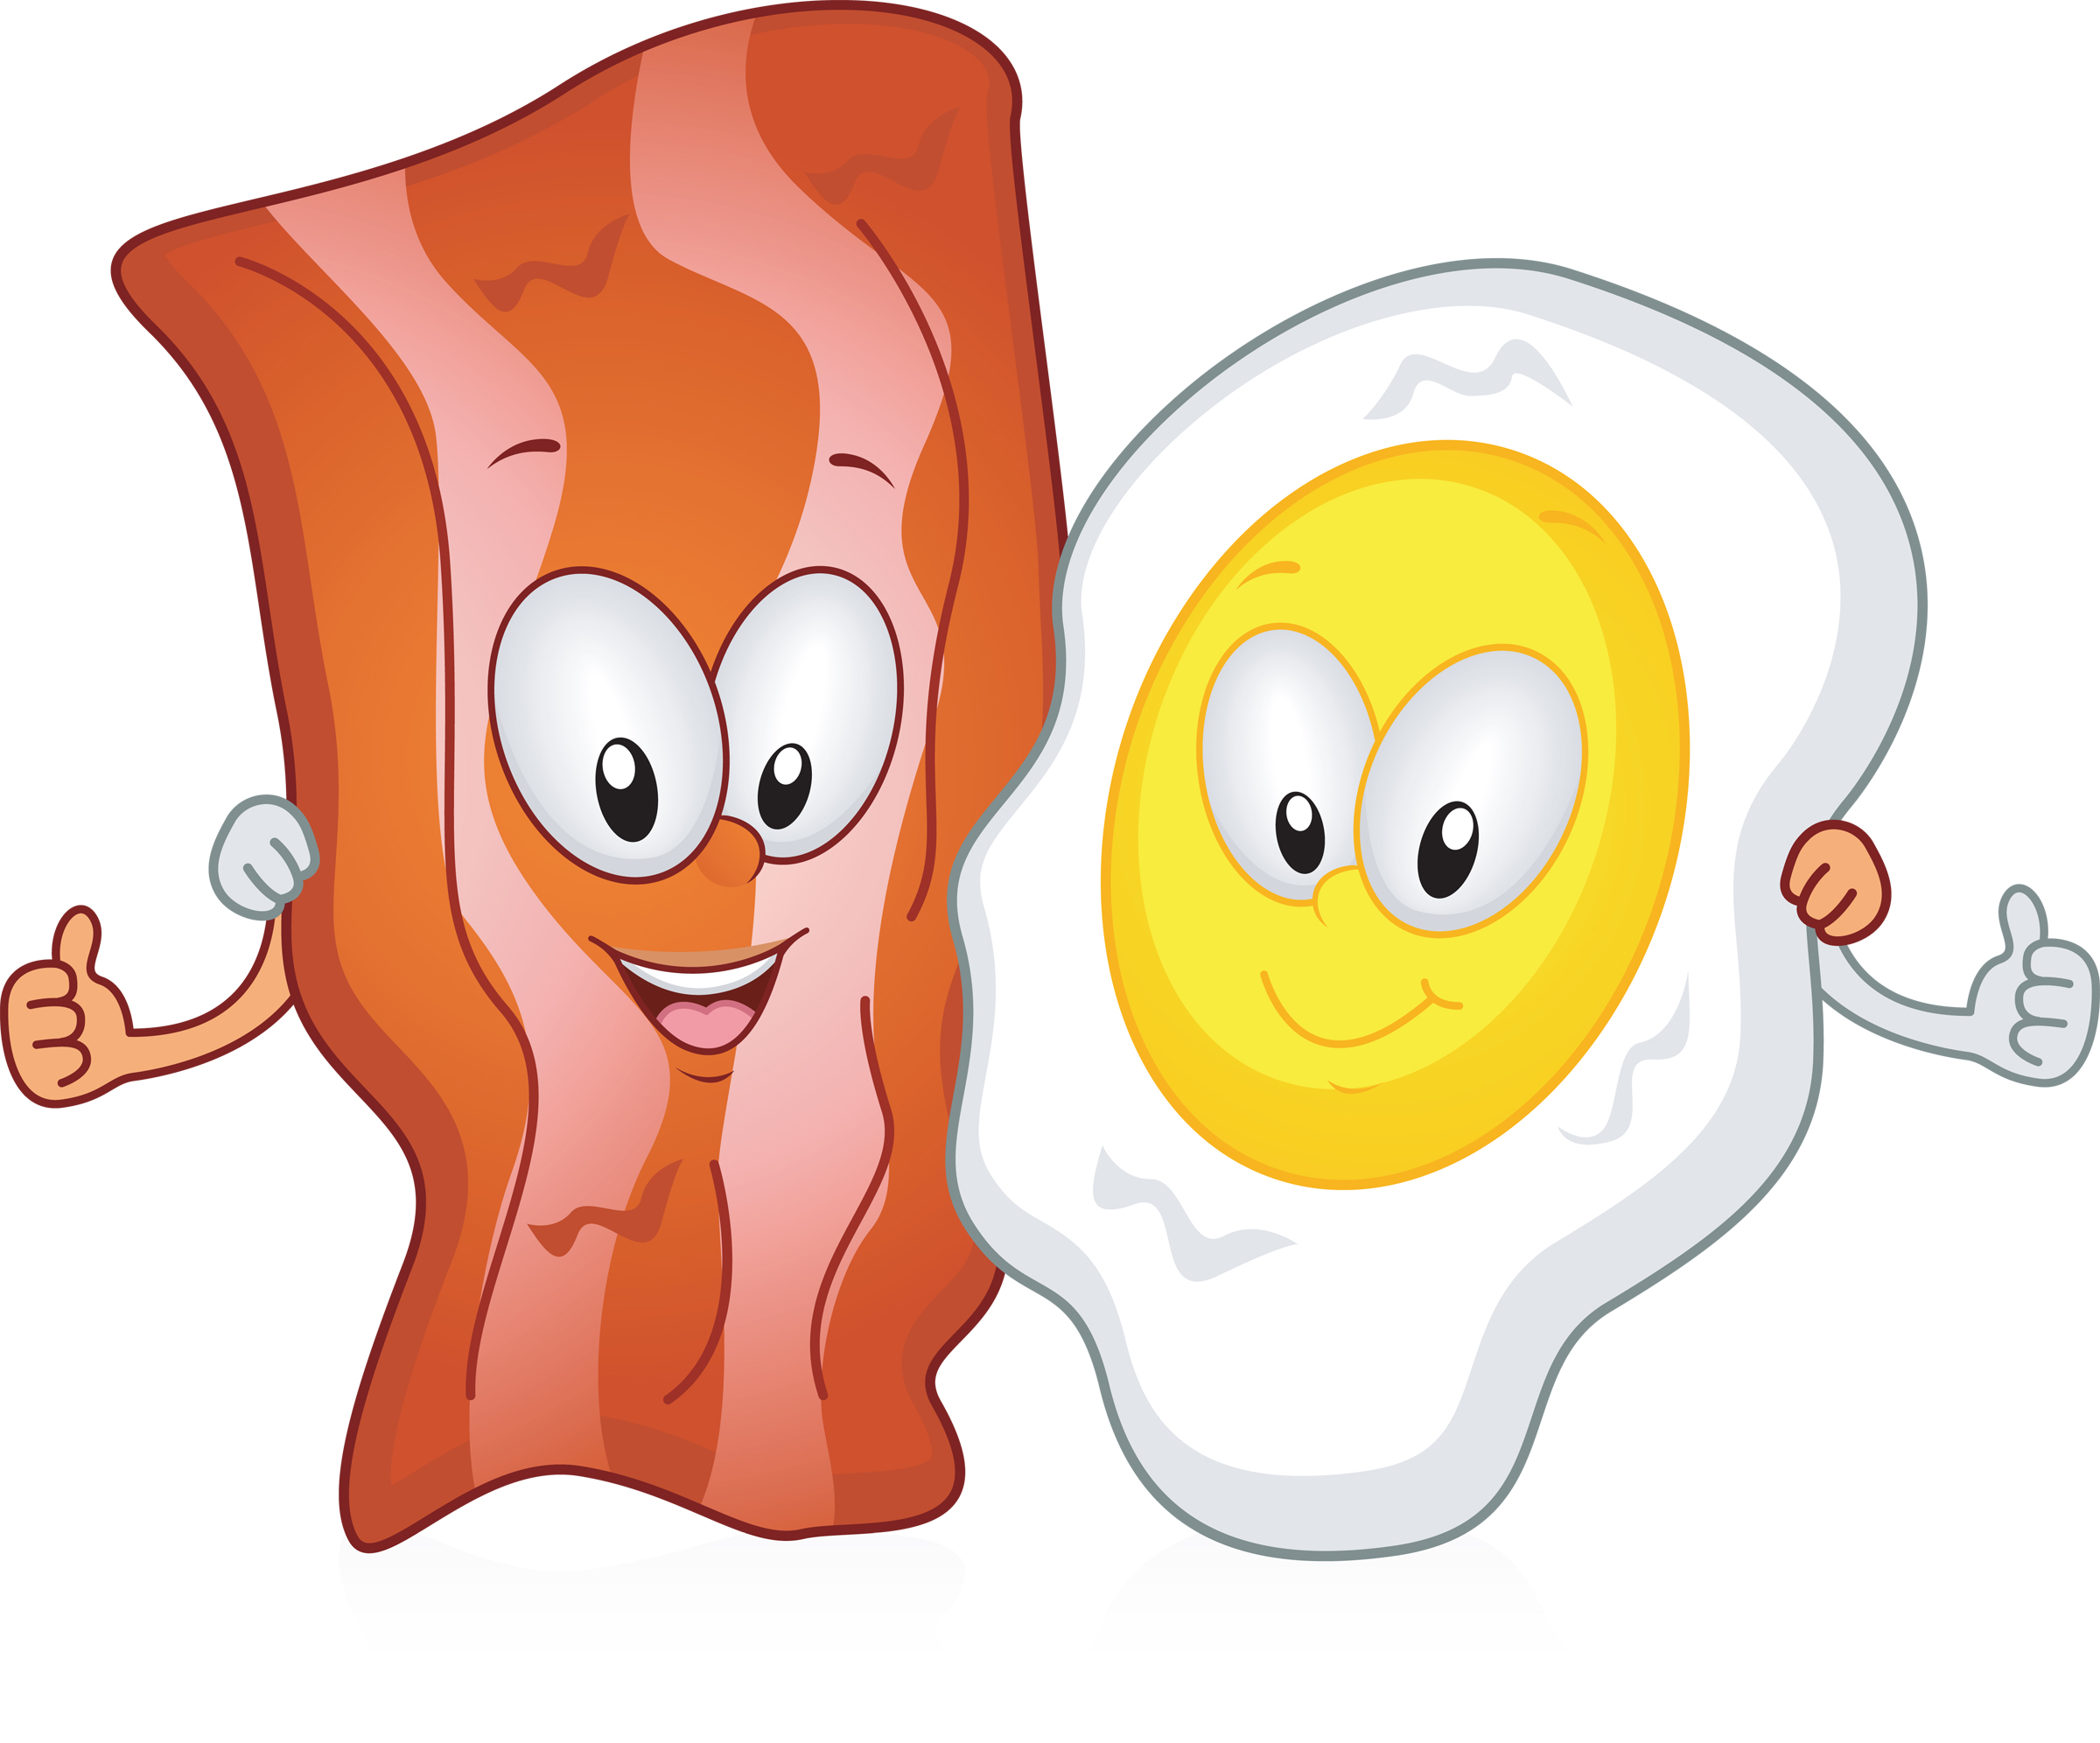 Bacon and eggs border clipart graphic freeuse Free Cartoon Eggs Cliparts, Download Free Clip Art, Free Clip Art on ... graphic freeuse